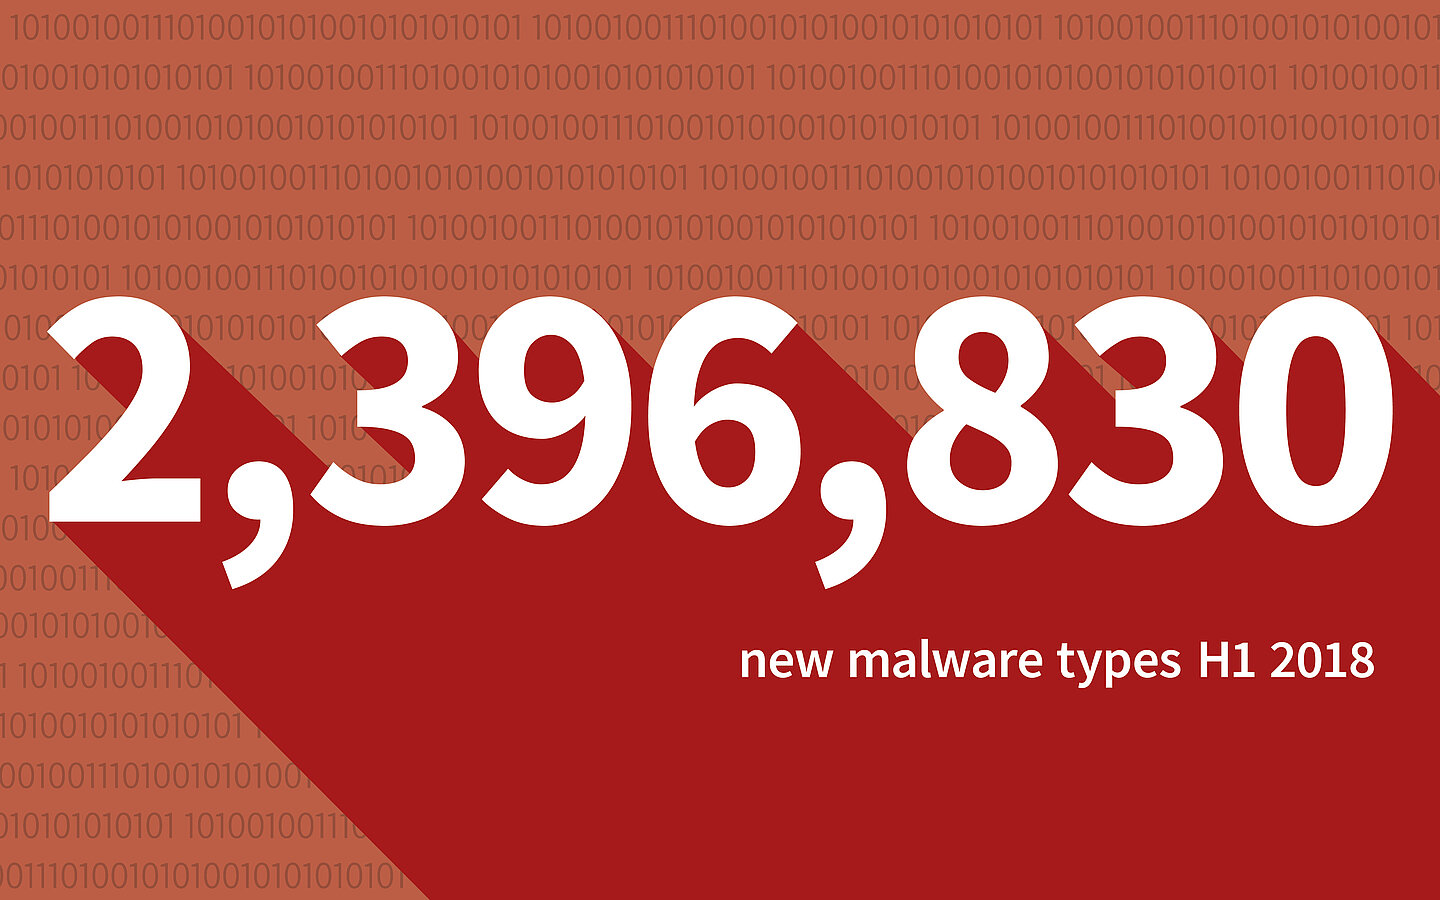 G DATA identified 2.396.830 malwaretypes in the first half of 2018